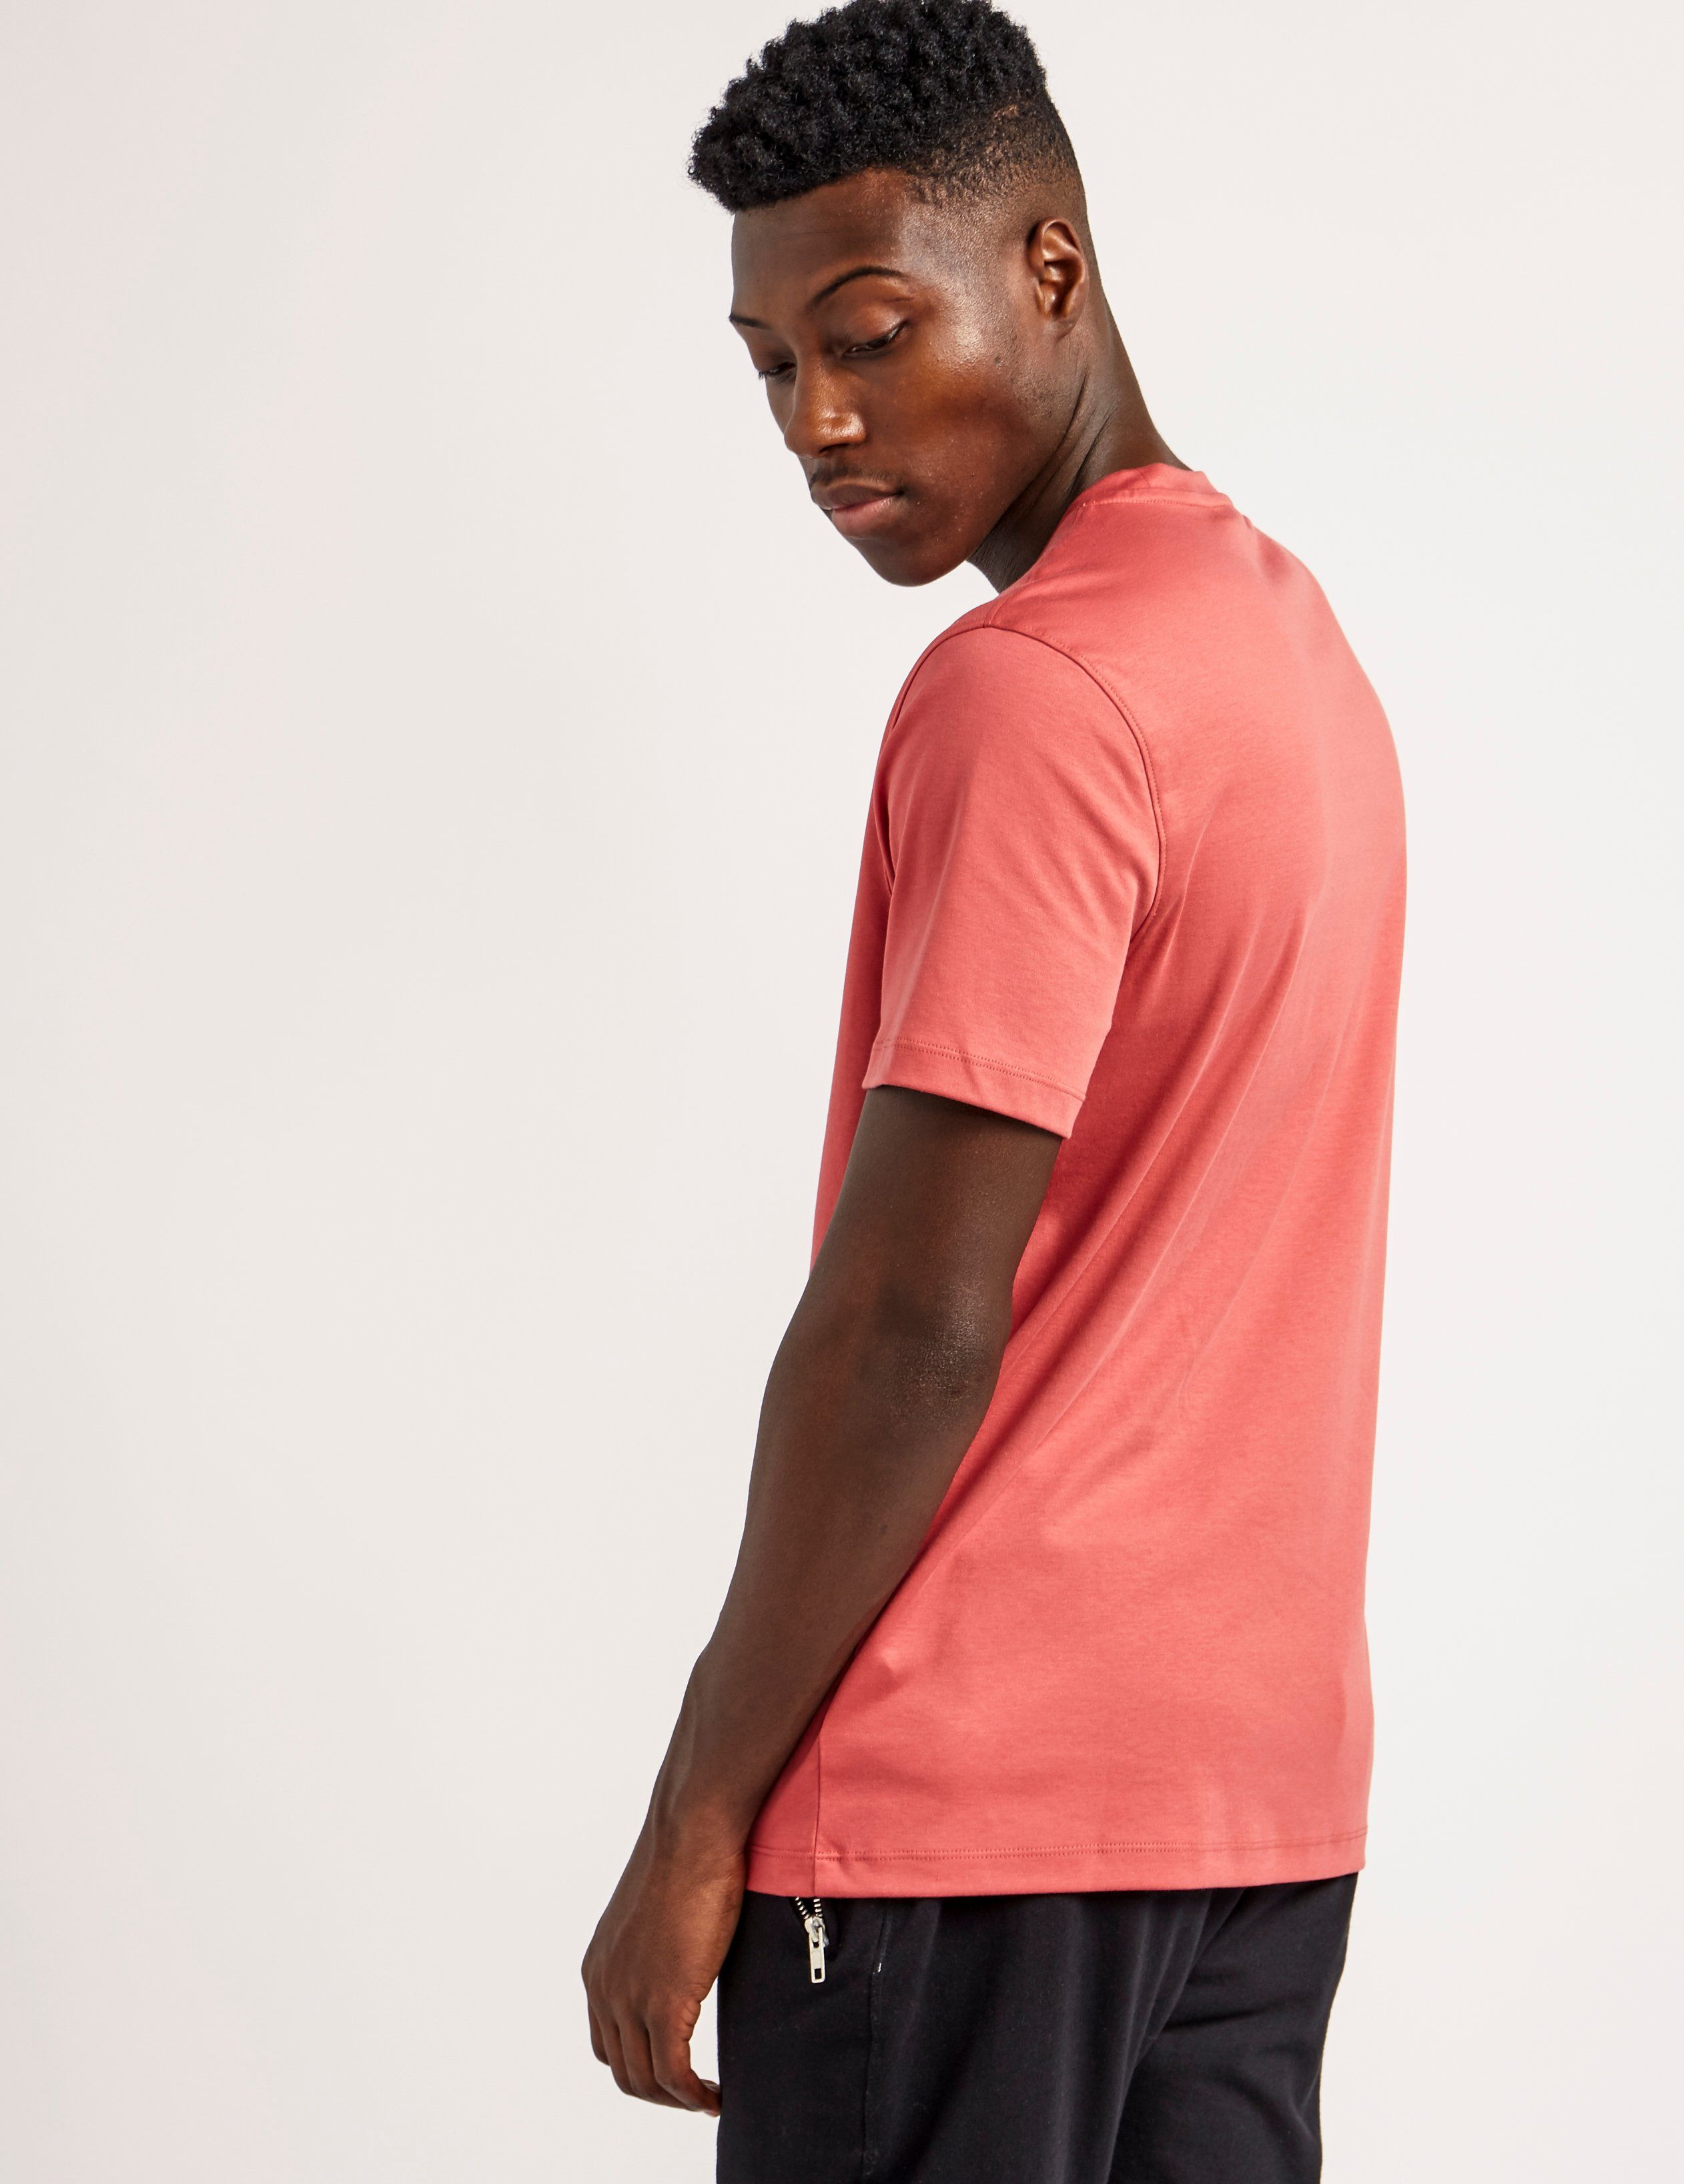 Michael Kors Short Sleeve Sleek T-Shirt